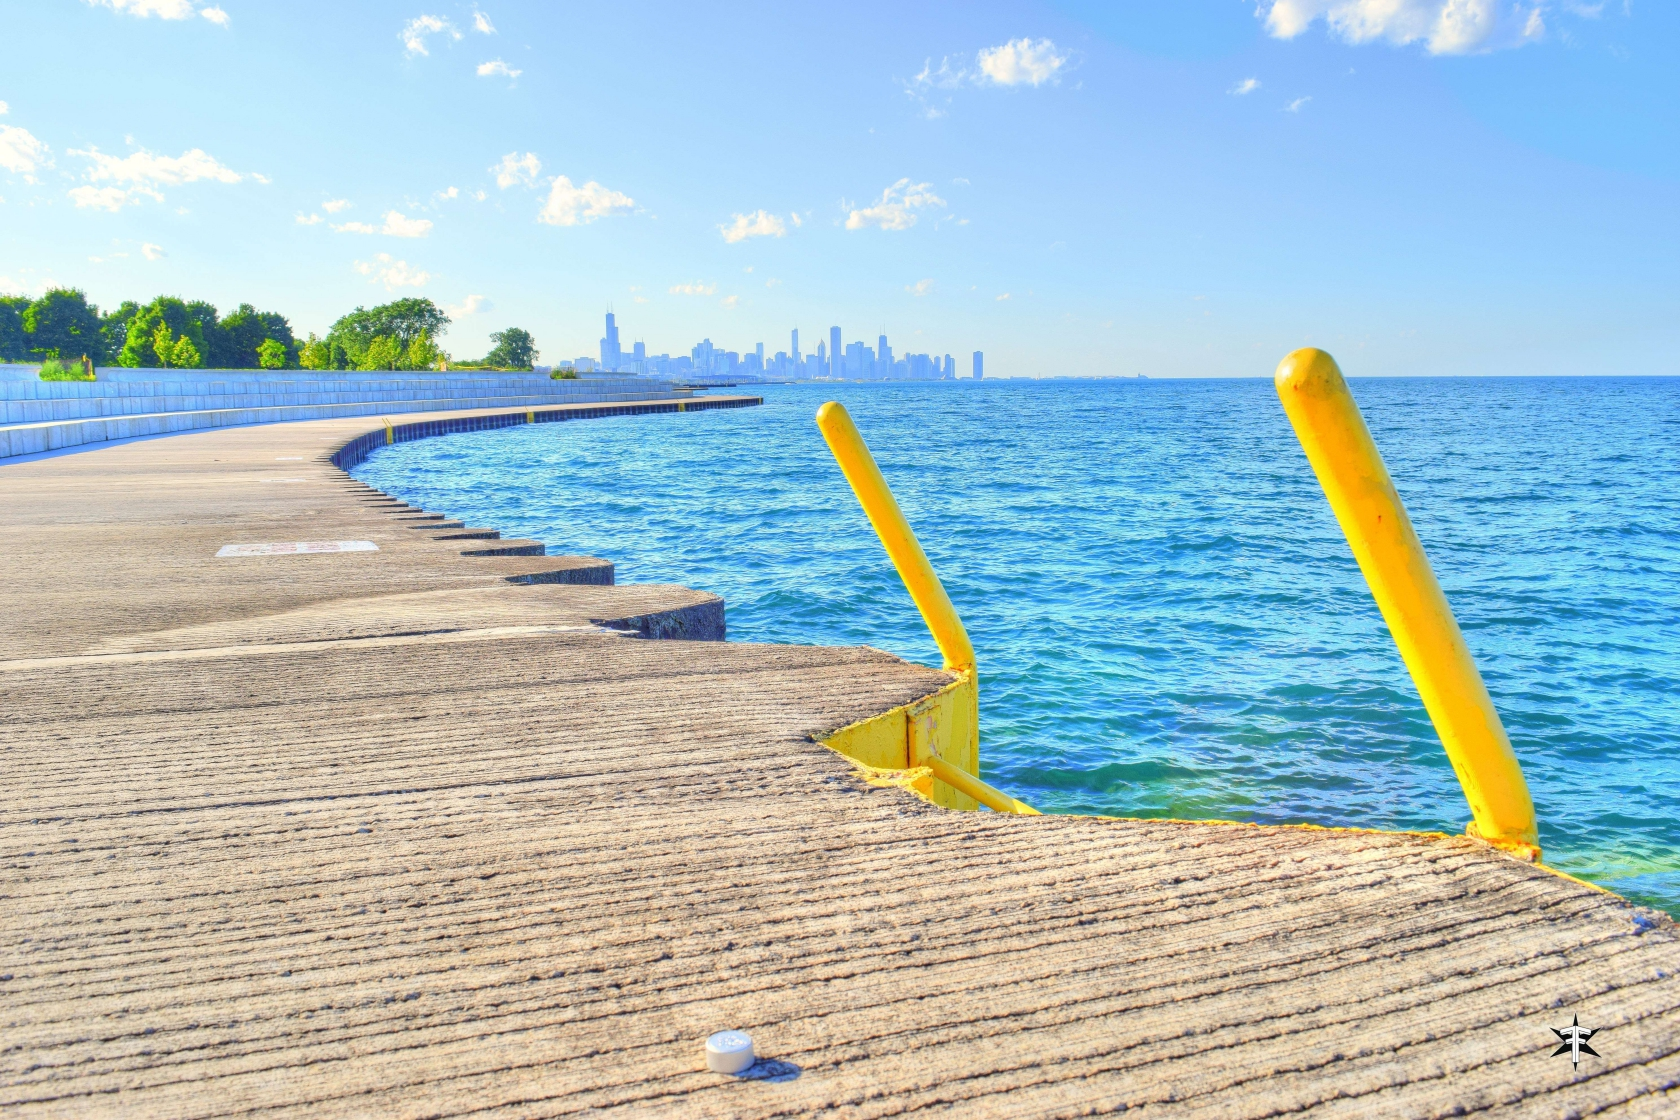 batch_chicago lake michigan skyline water colorful summer ladder swimming.jpg